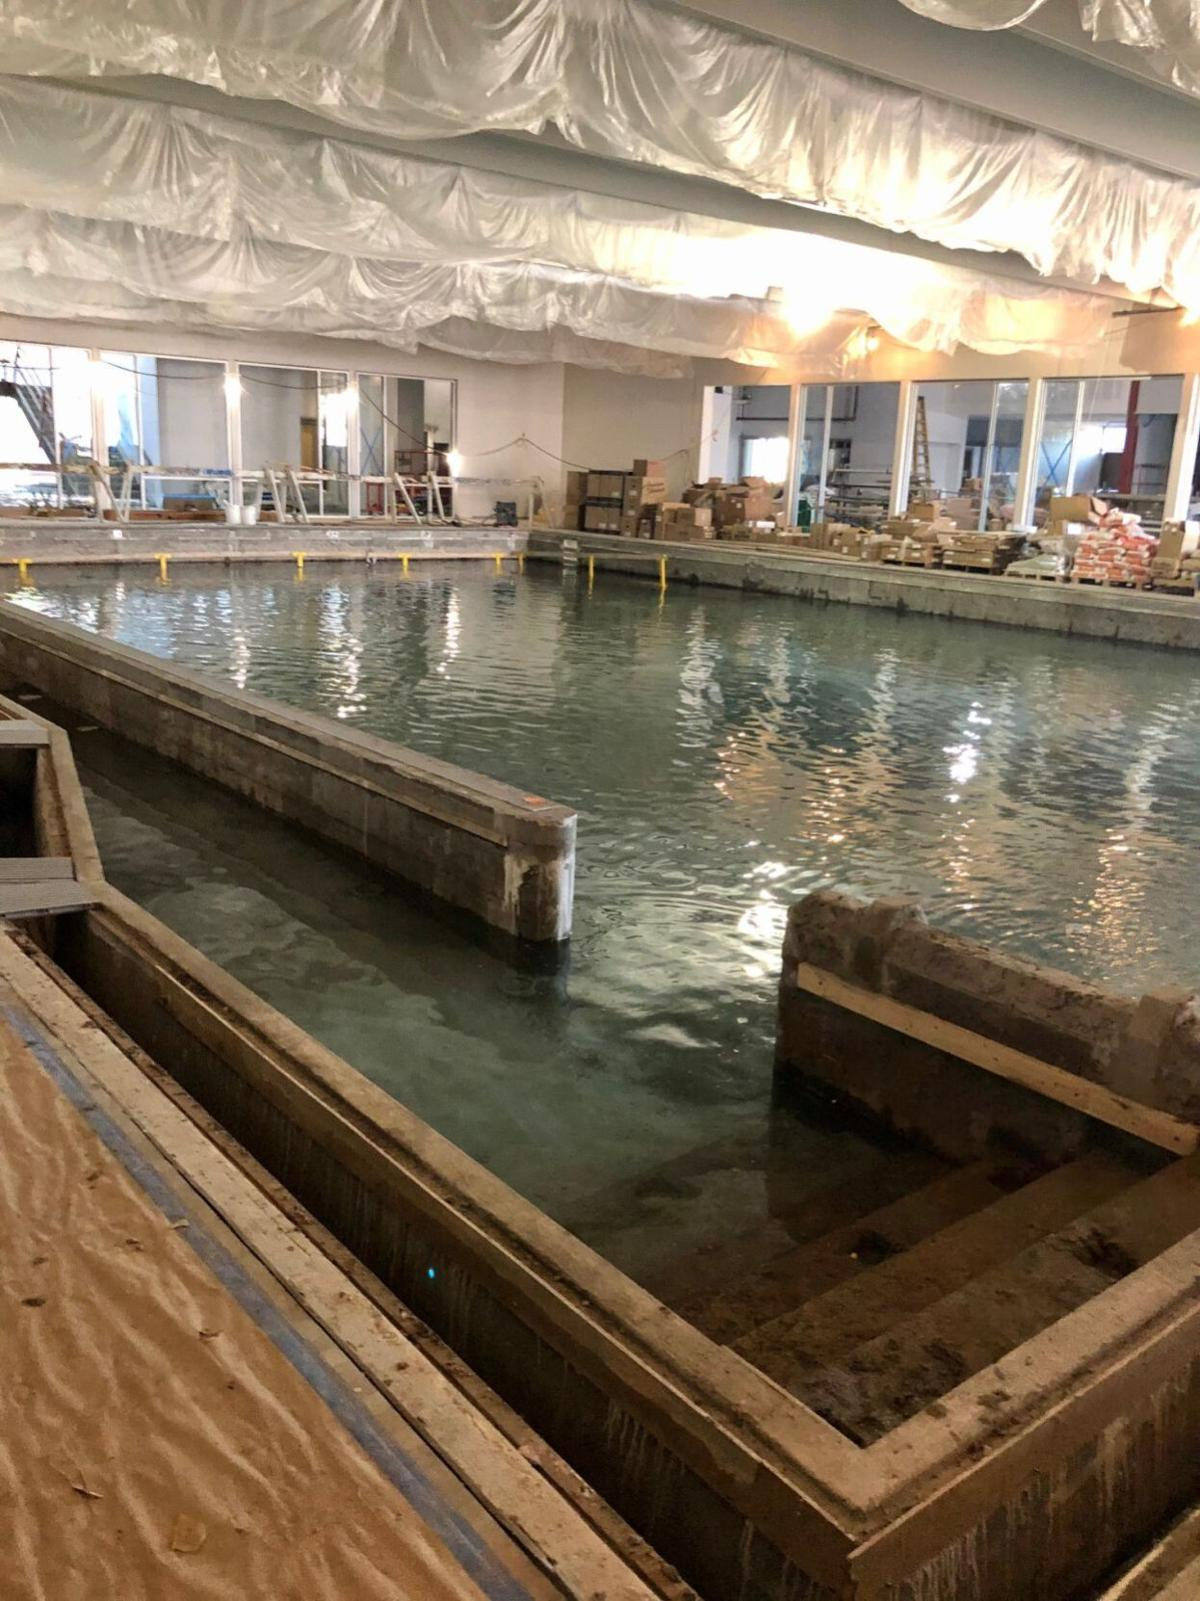 New Winona Family YMCA pool under construction (Oct. 2020)